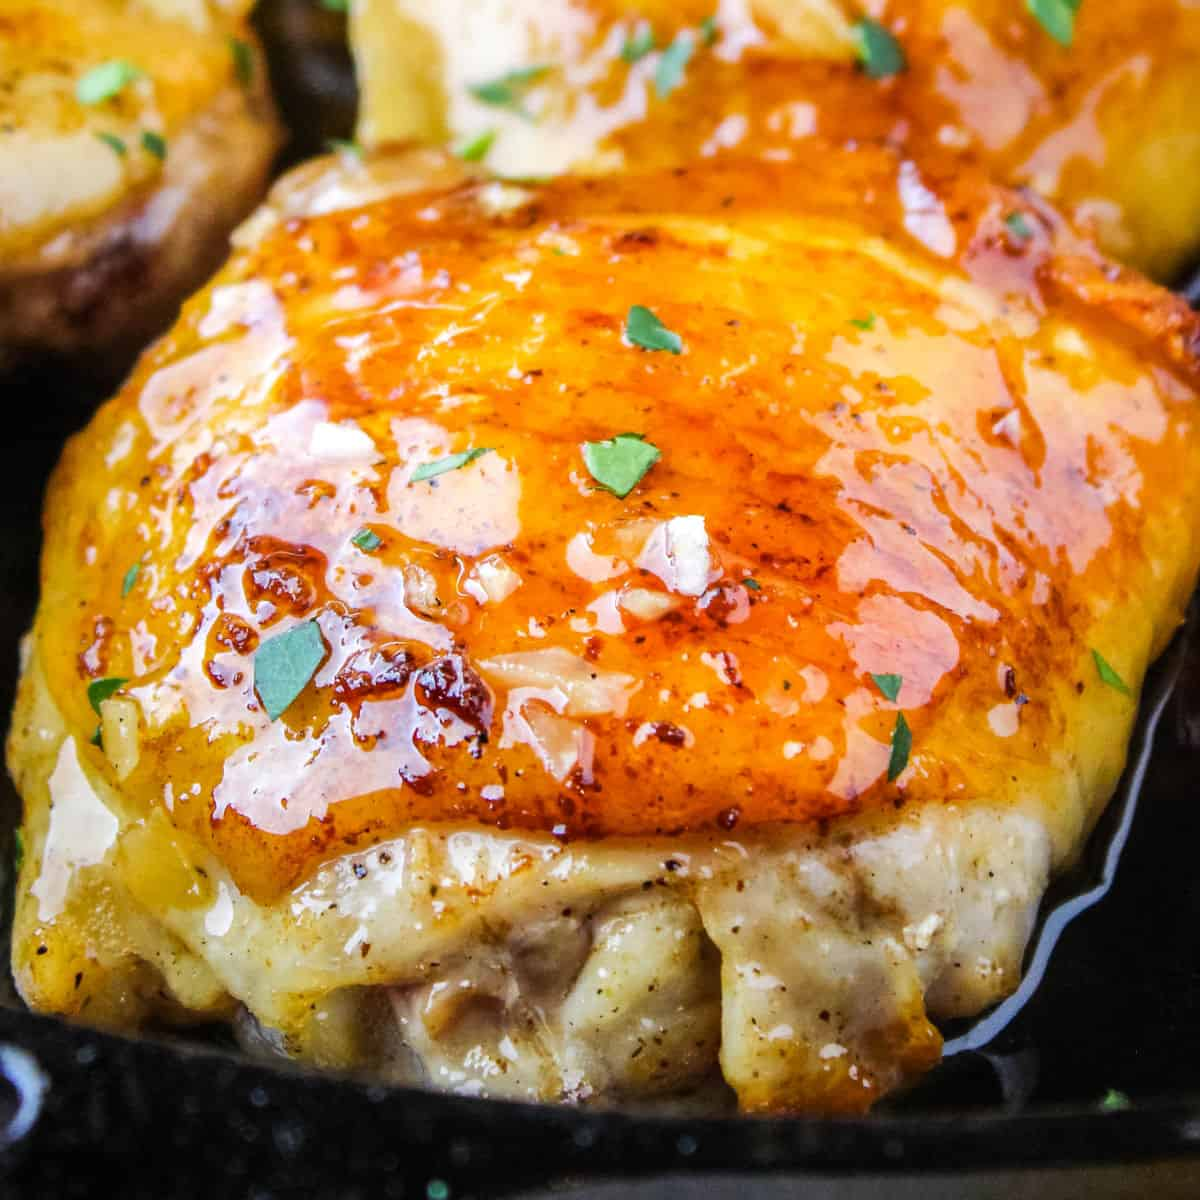 square image of a hony garlic chicken thigh in a skillet